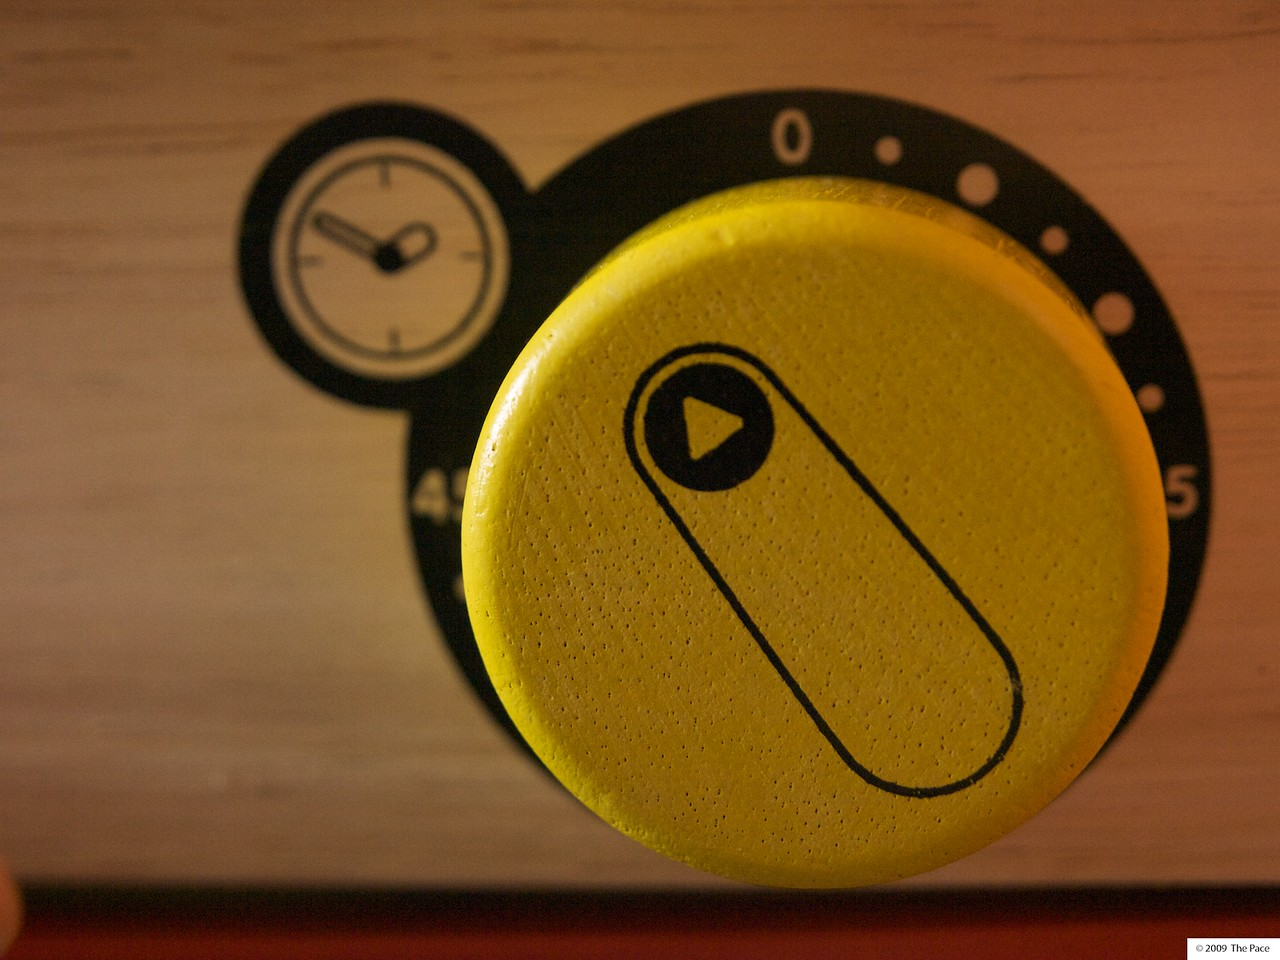 Week 45 - Yellow dial